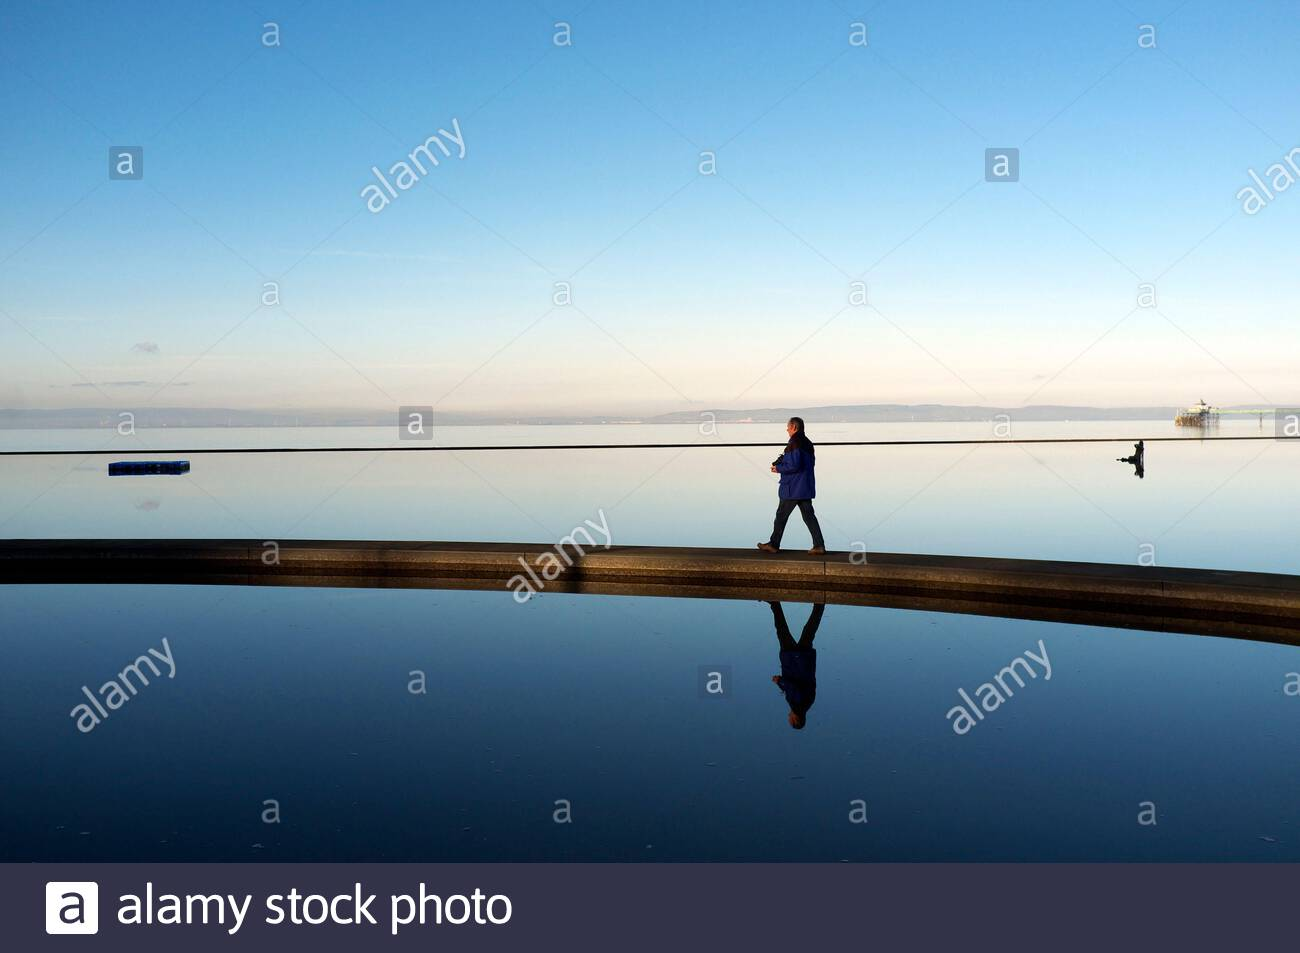 A man walks along a walkway across the Marine Lake on Clevedon seafront during a calm winter's day. Clevedon, North Somerset, UK. Stock Photo